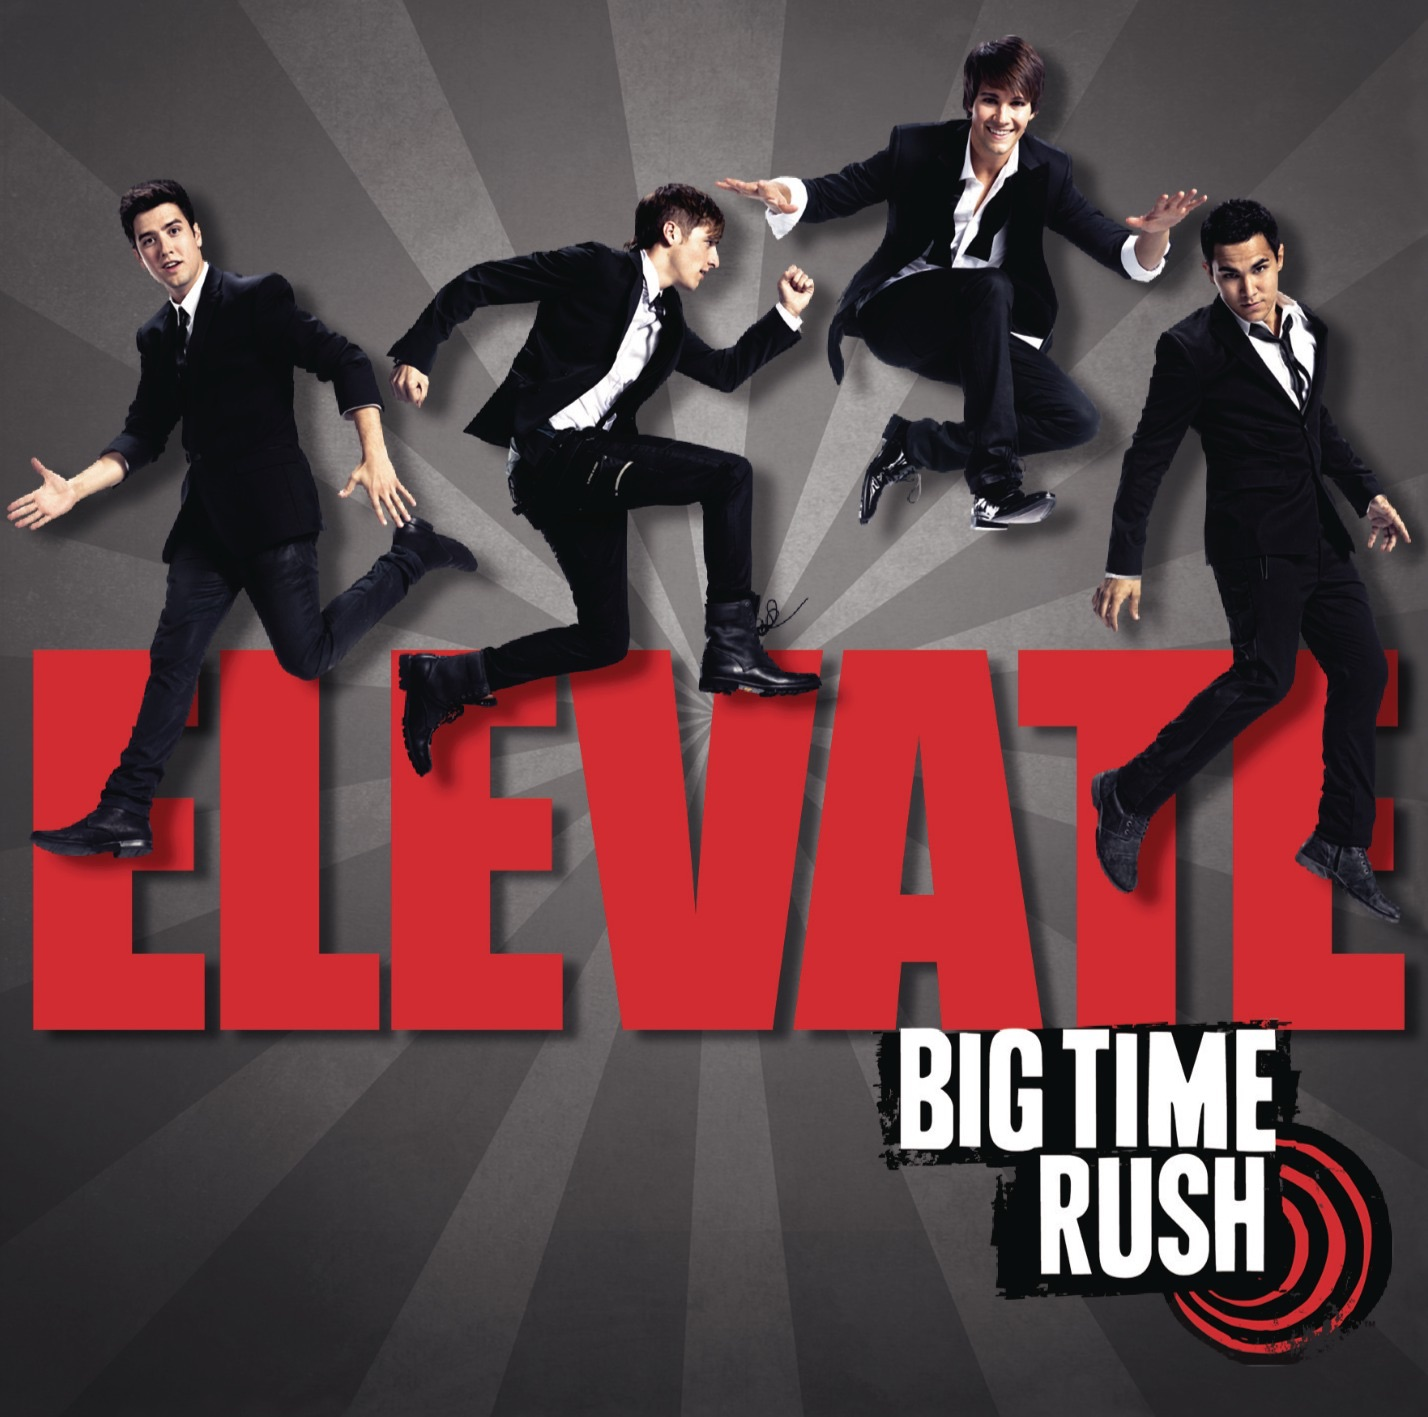 Download Song Better Now: Elevate By Big Time Rush On ITunes